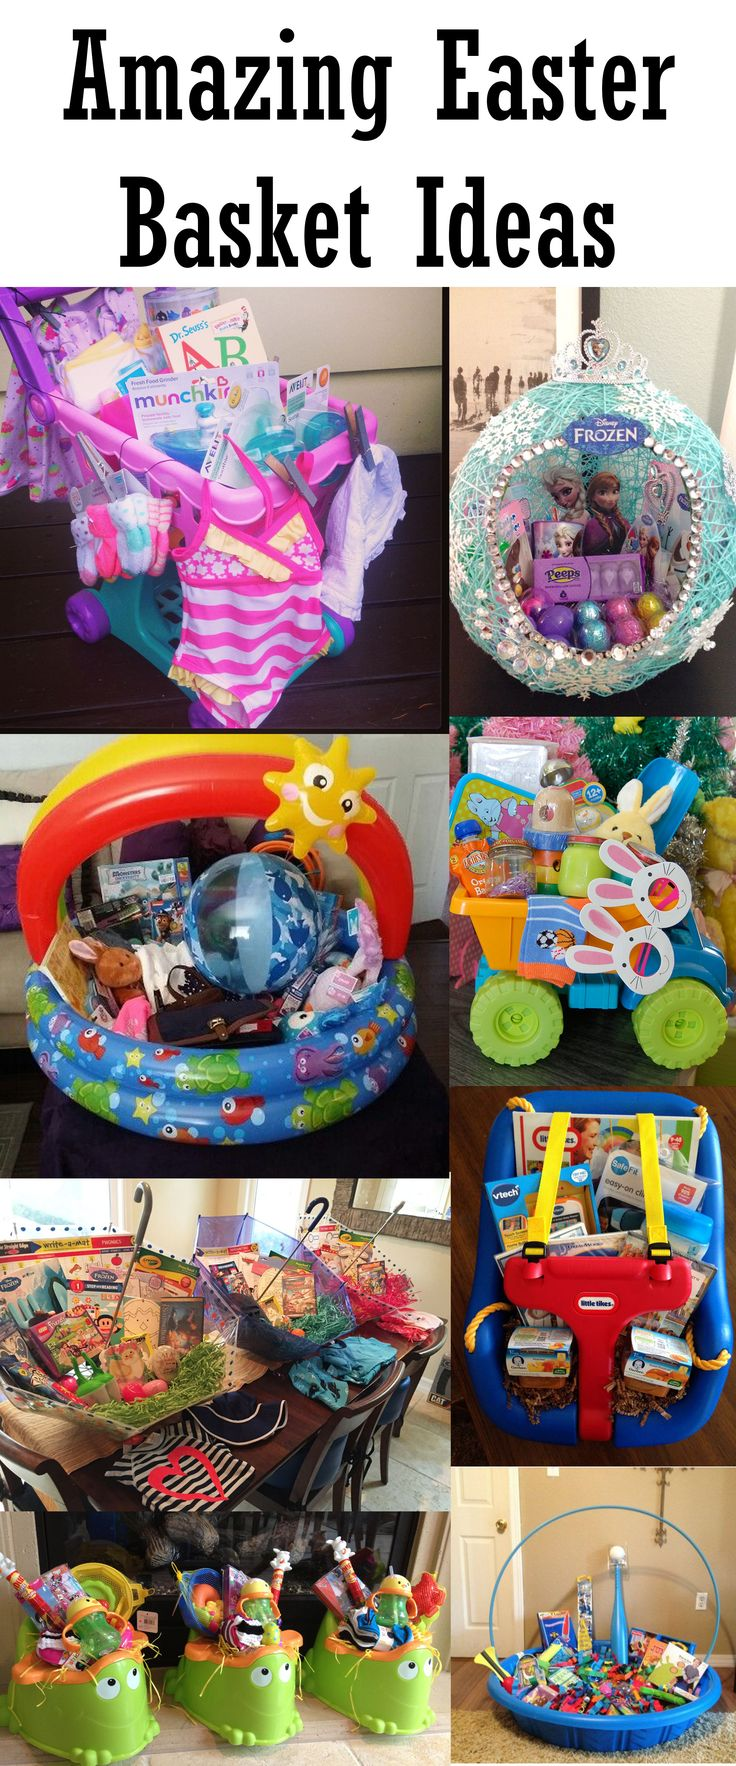 Best 25 easter gift baskets ideas on pinterest easter baskets amazing easter basket ideas 1 negle